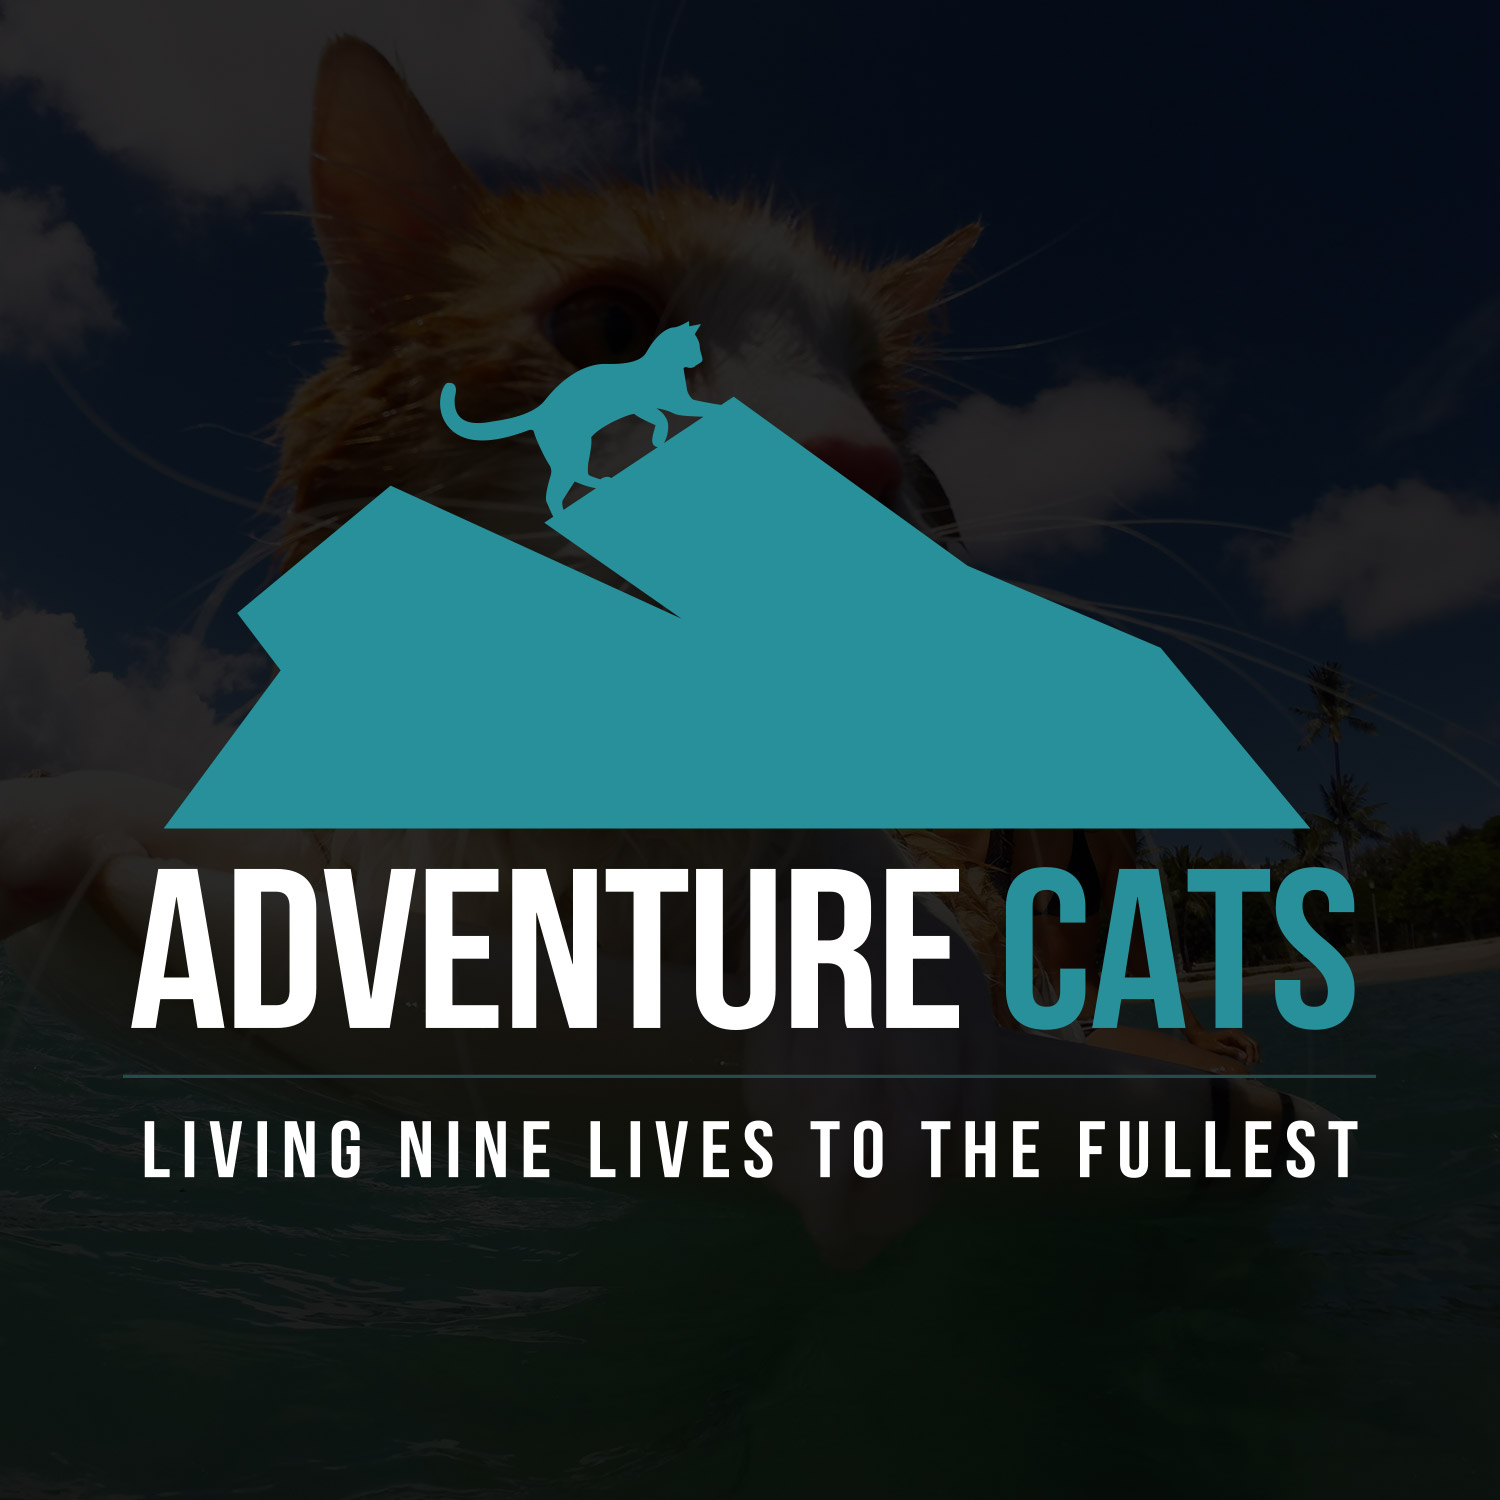 adventurecats-logo